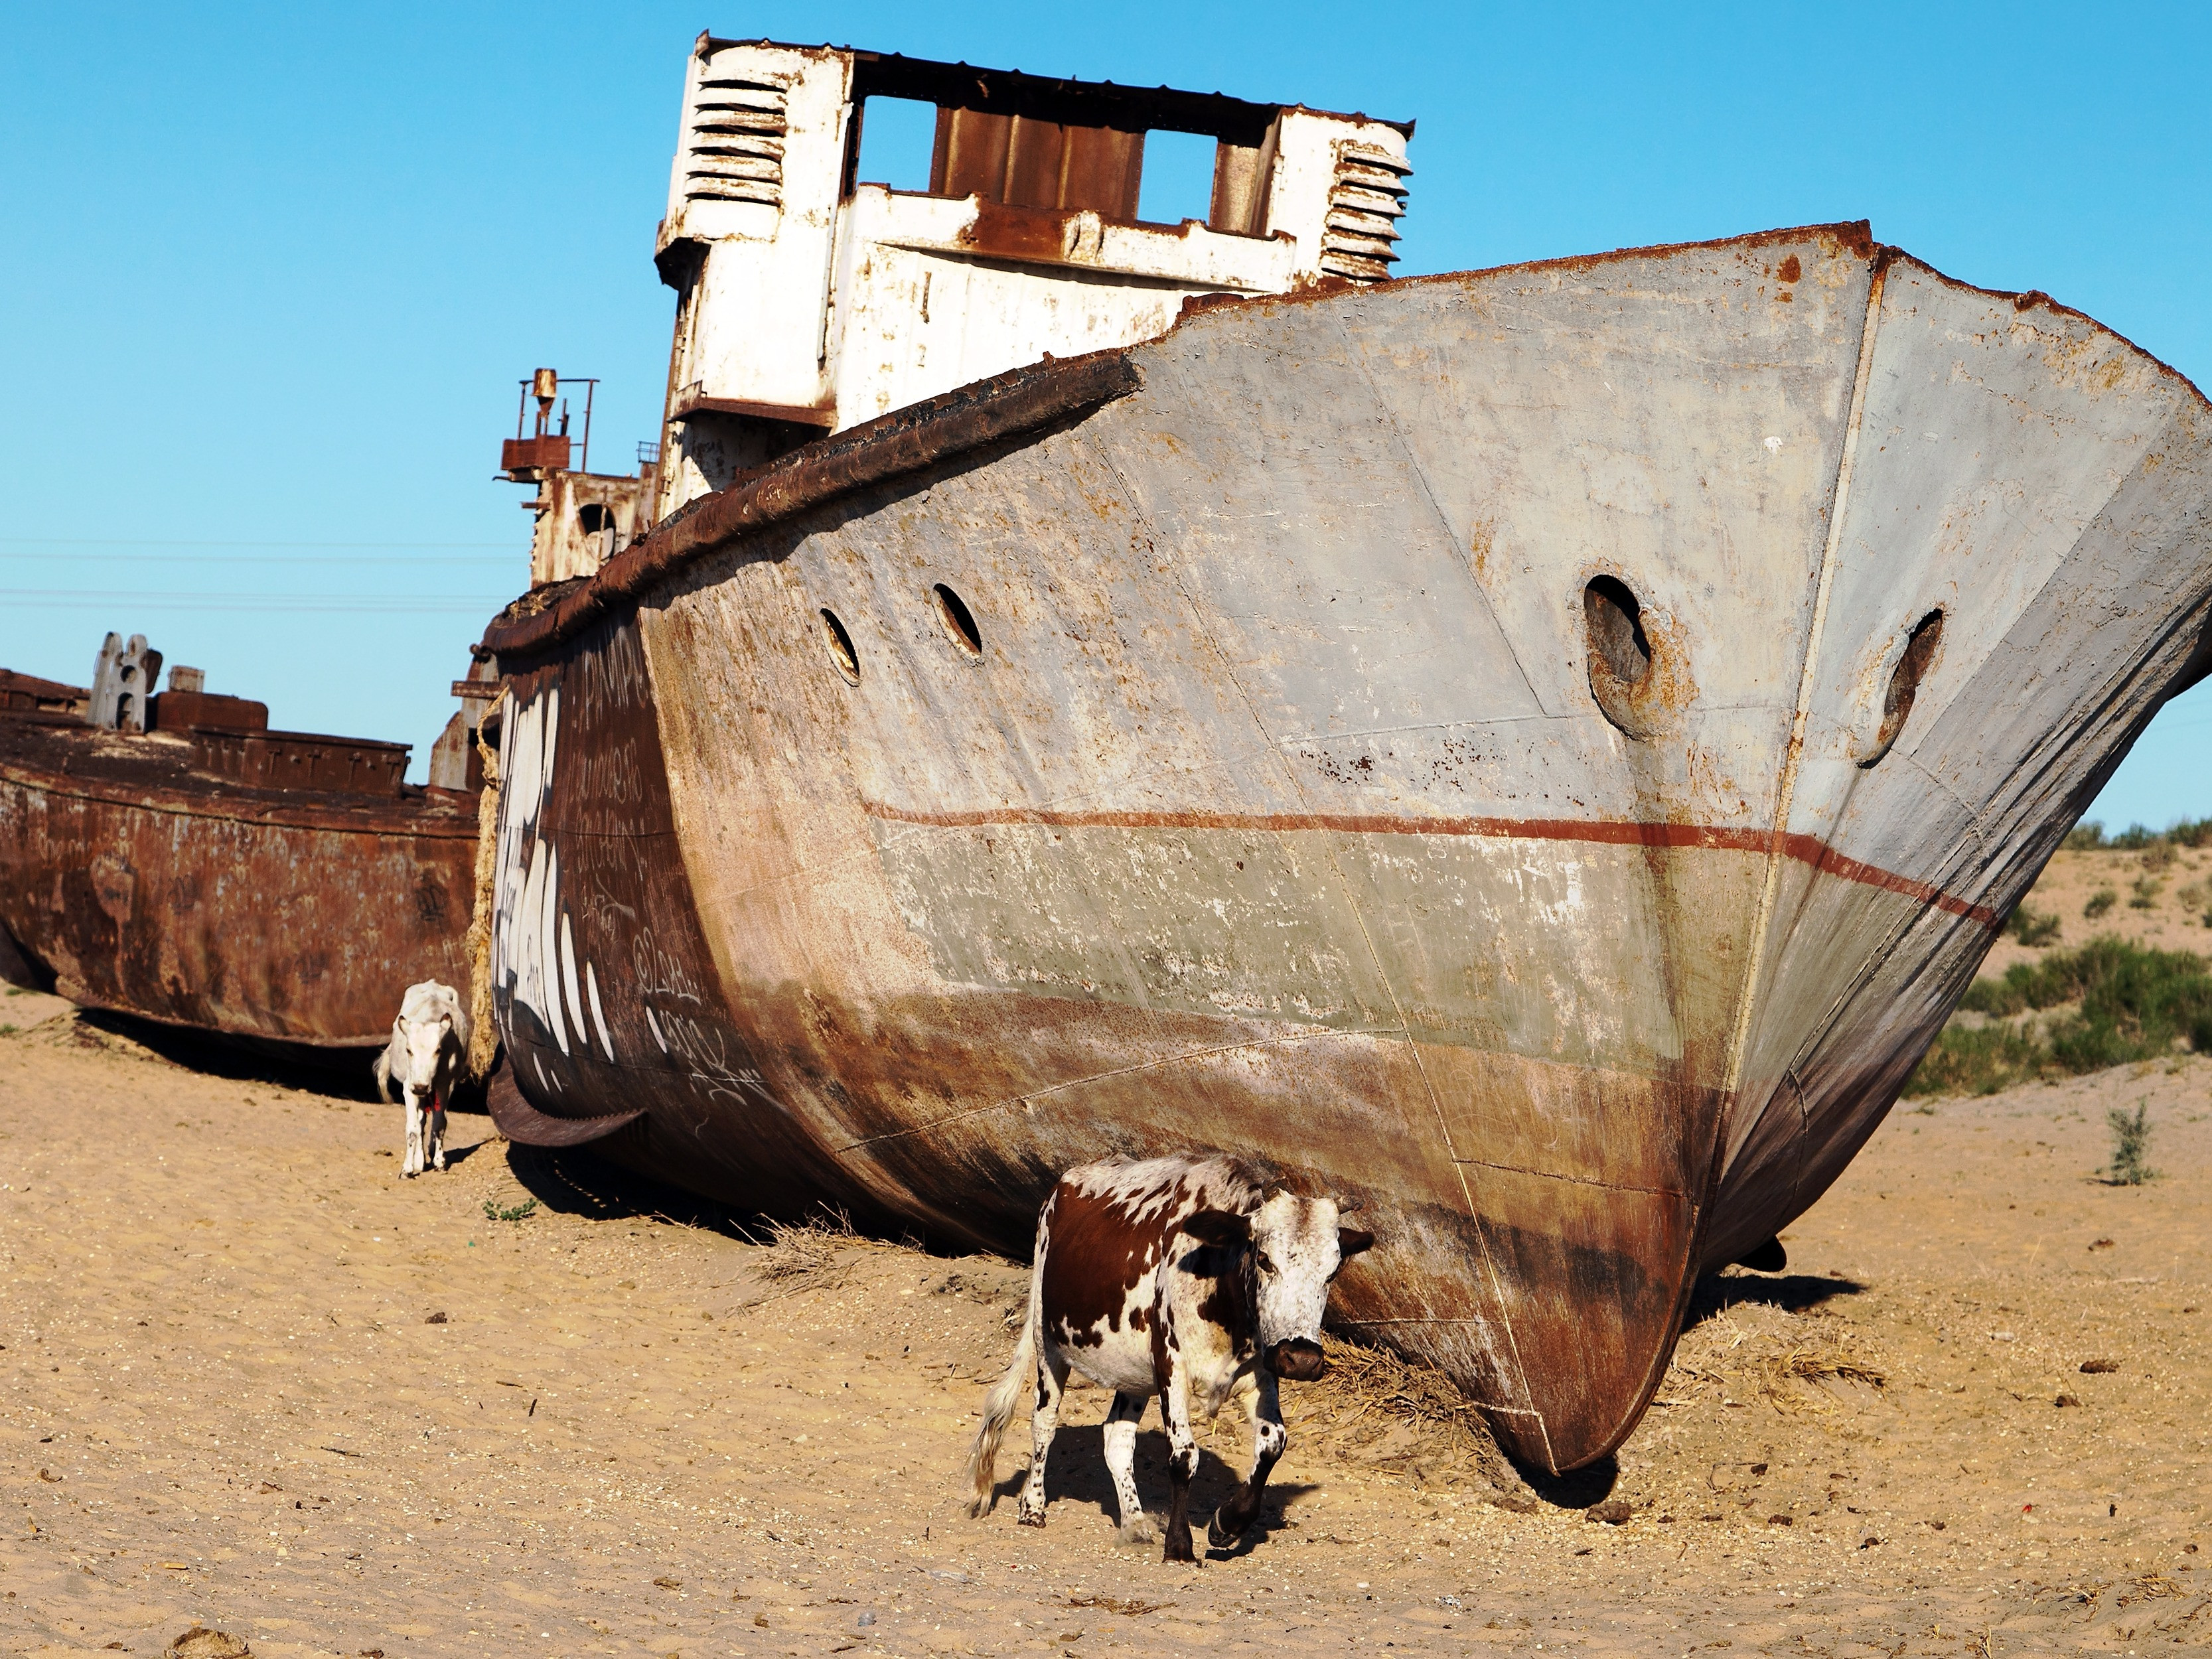 Ships Of The Dessert  9 incredible photos of an eerie ship graveyard in the